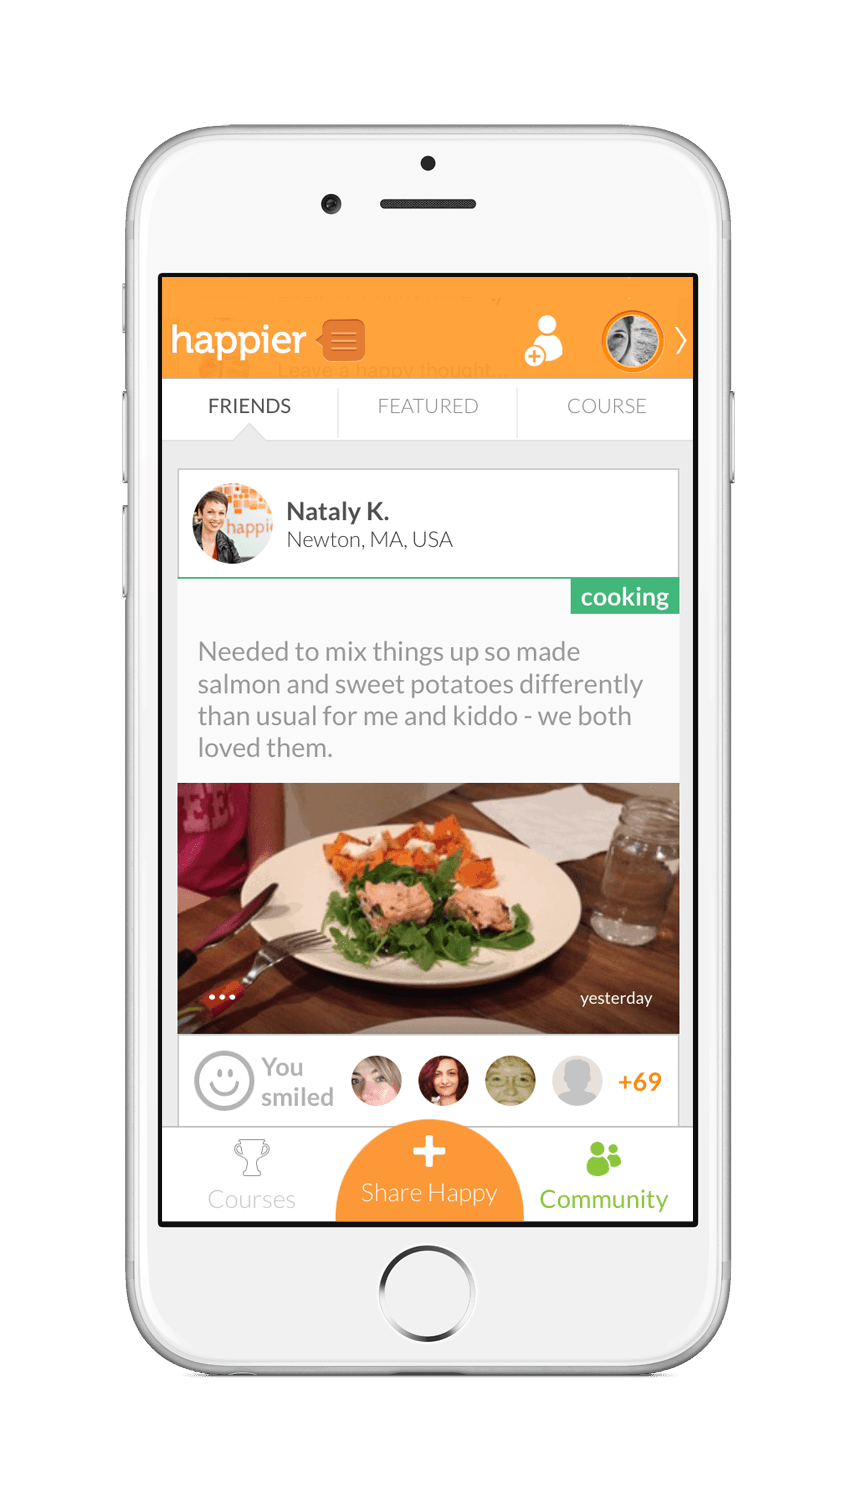 Happier app helps with positive thinking and increasing mindfulness